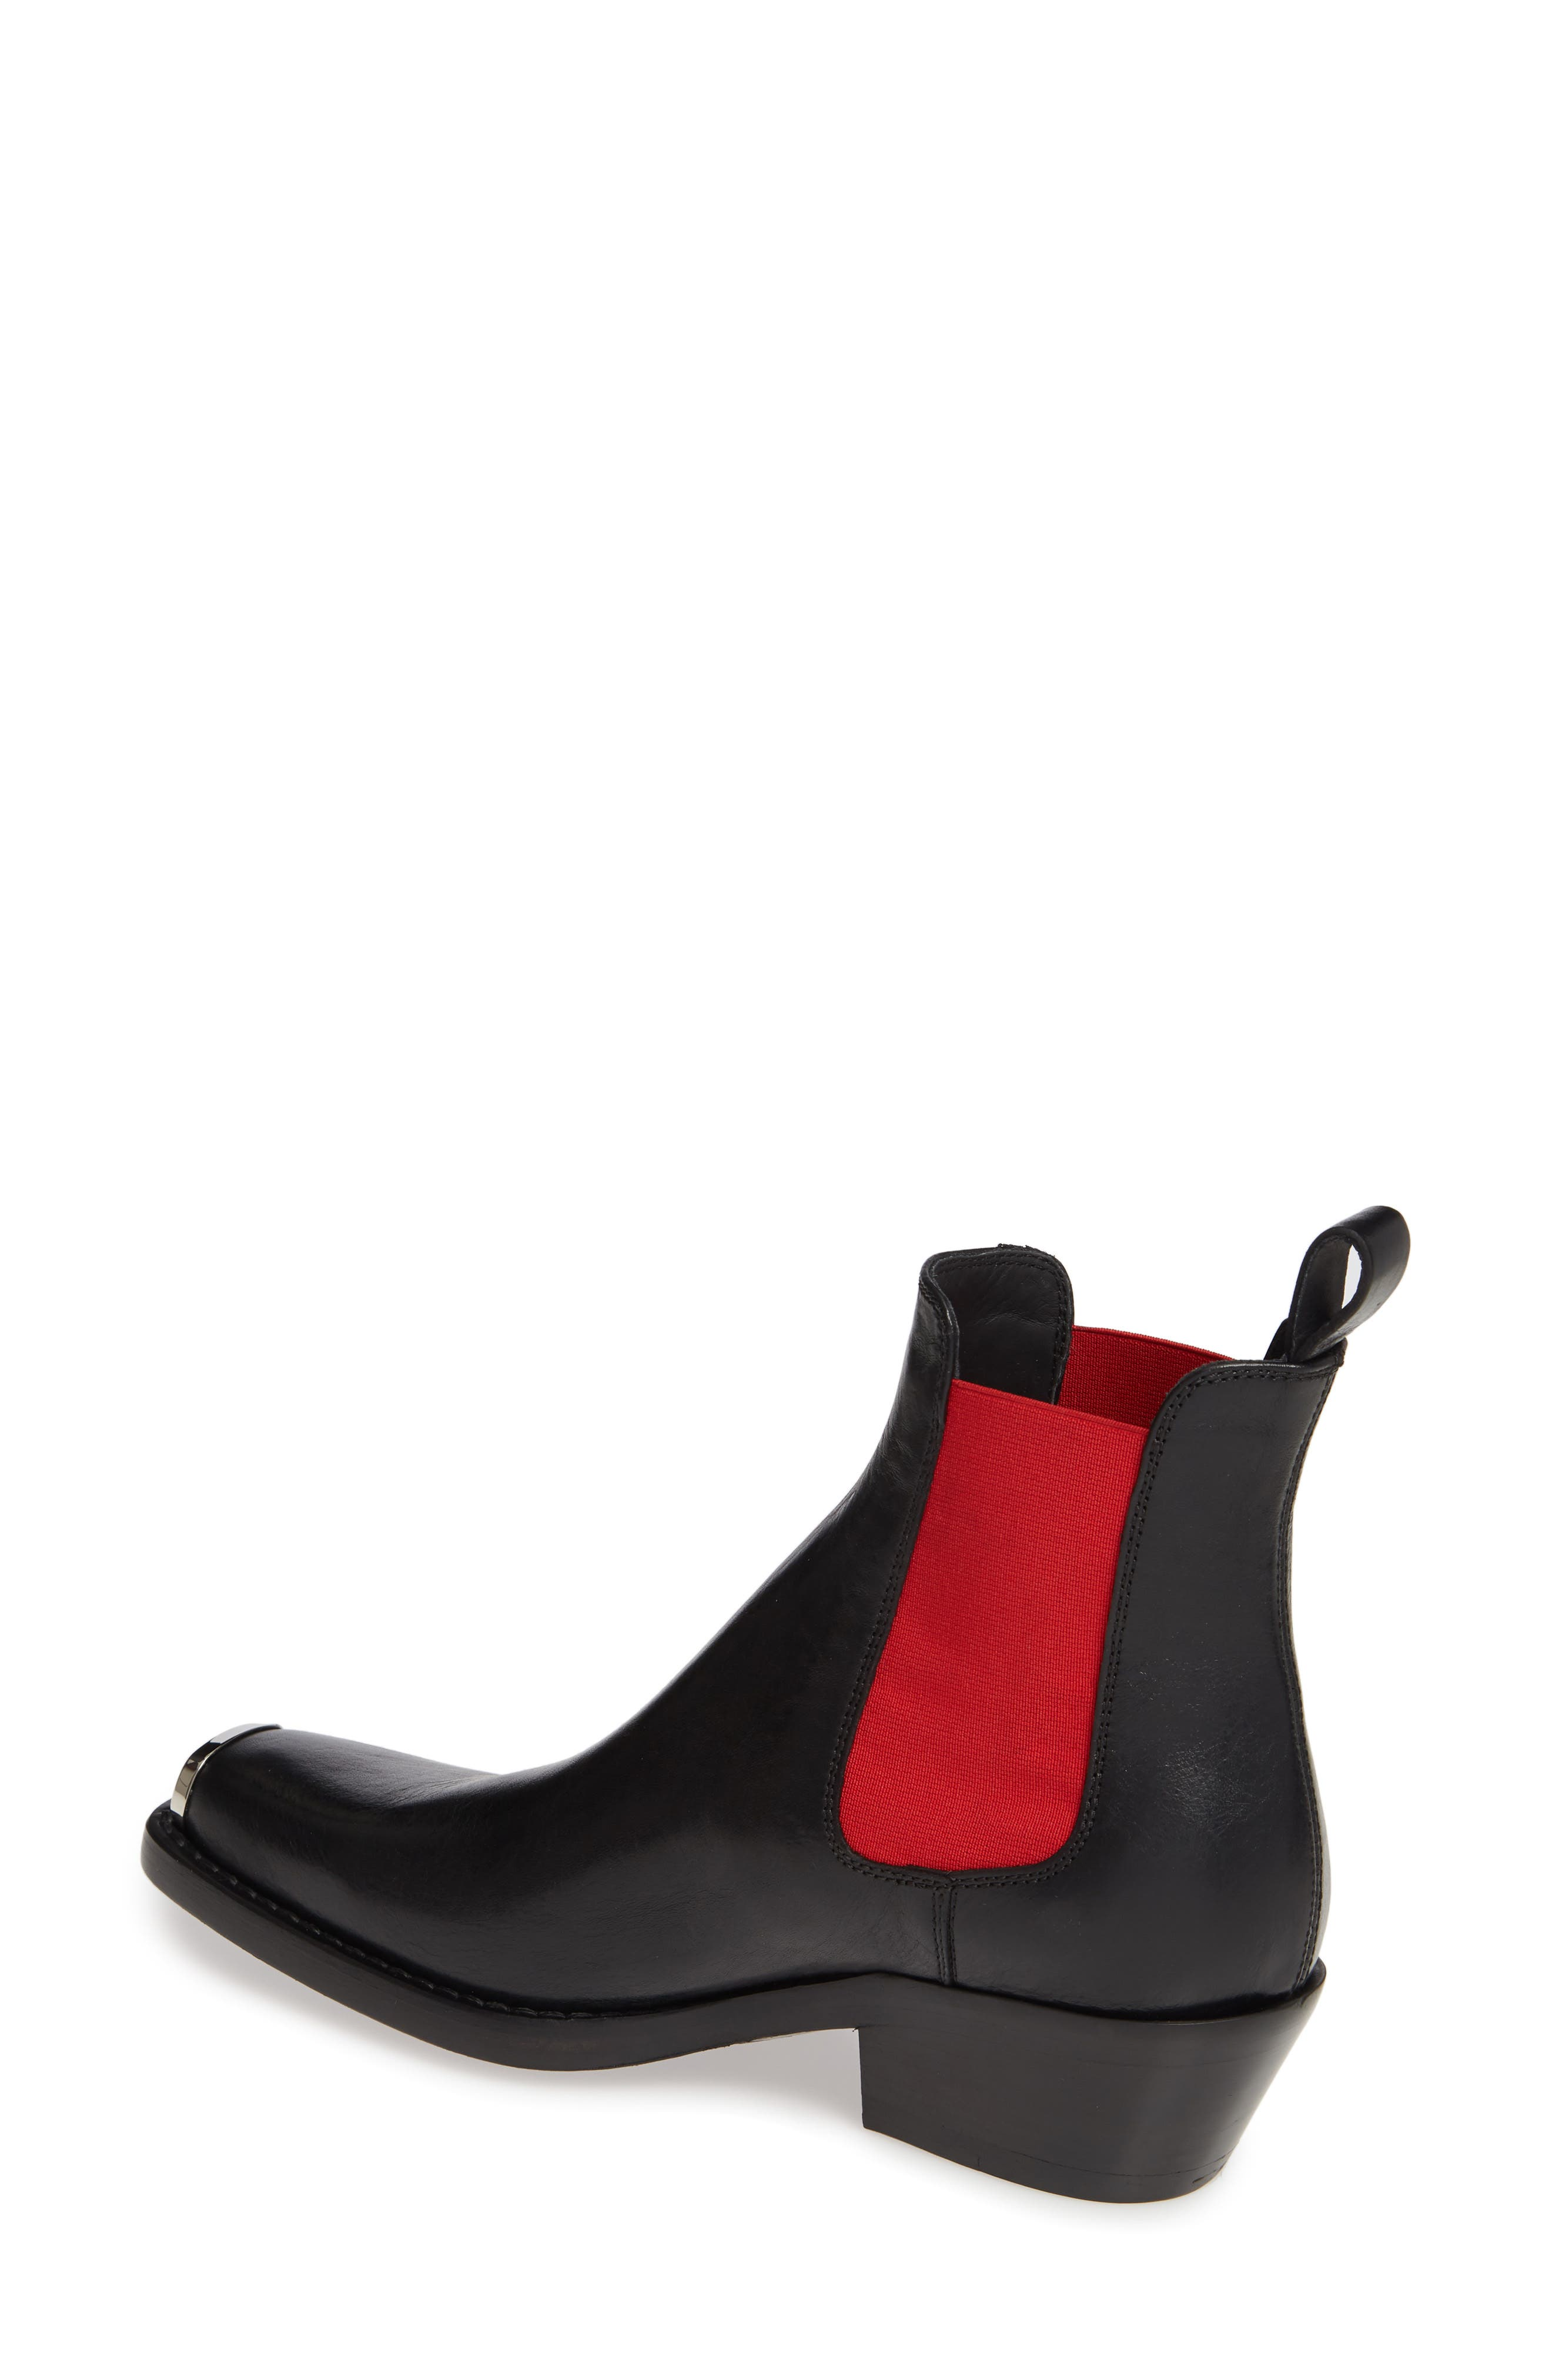 CALVIN KLEIN 205W39NYC, Claire Western Chelsea Boot, Alternate thumbnail 2, color, BLACK/ RED